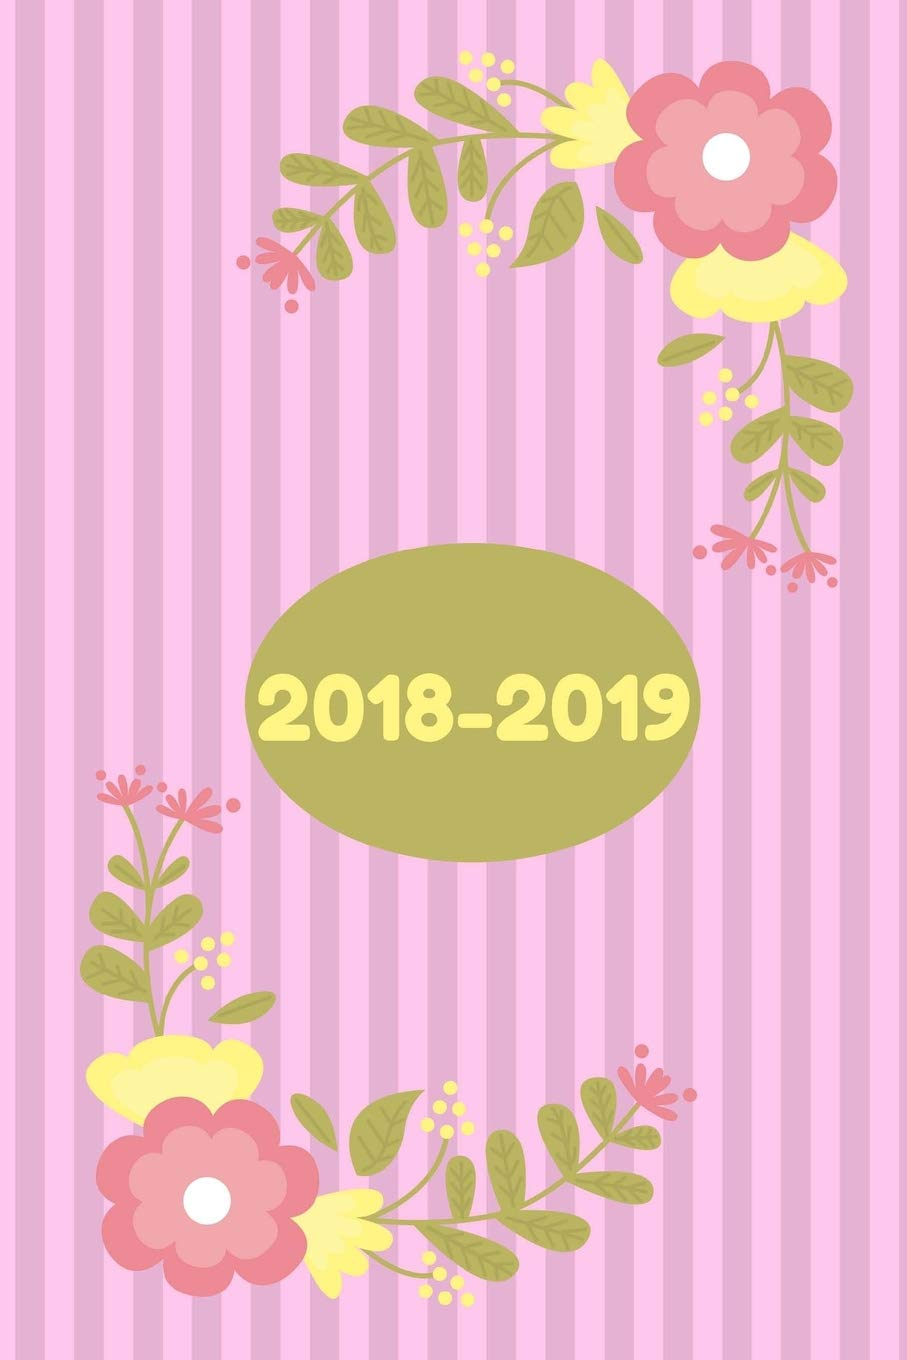 2018-2019 Planner: 2018-2019 Planner: 2019 Daily Planner ...